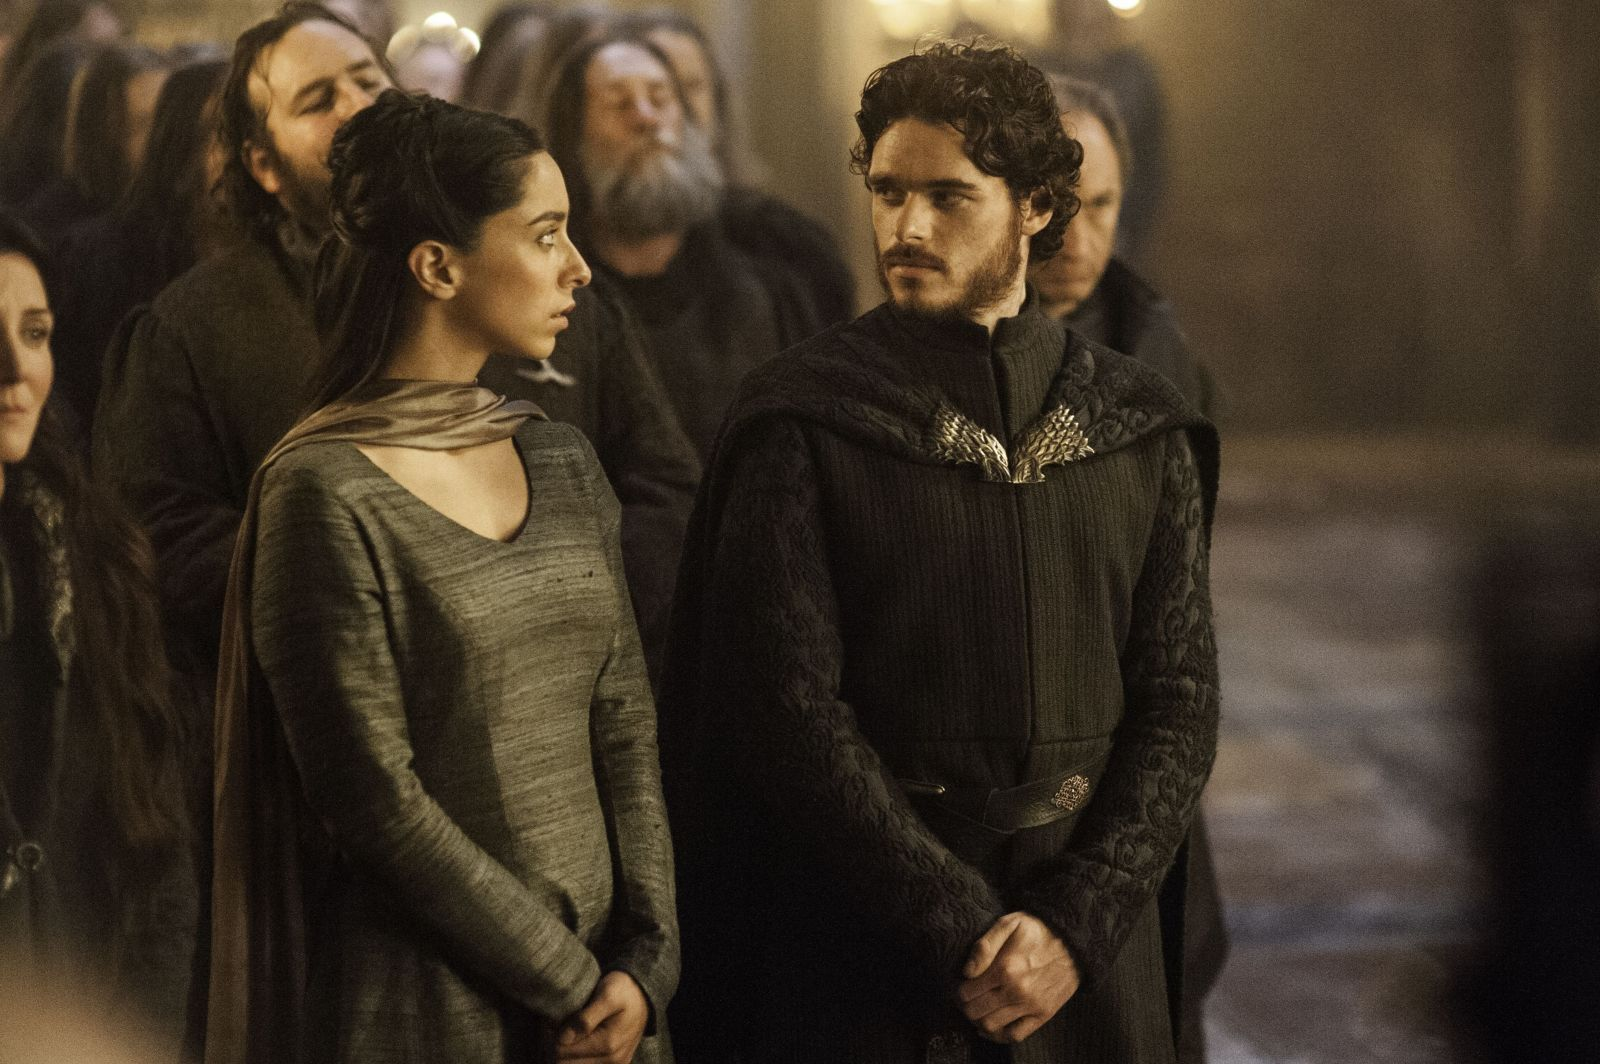 Game of Thrones: The 10 Biggest Differences Between the Show and the Books